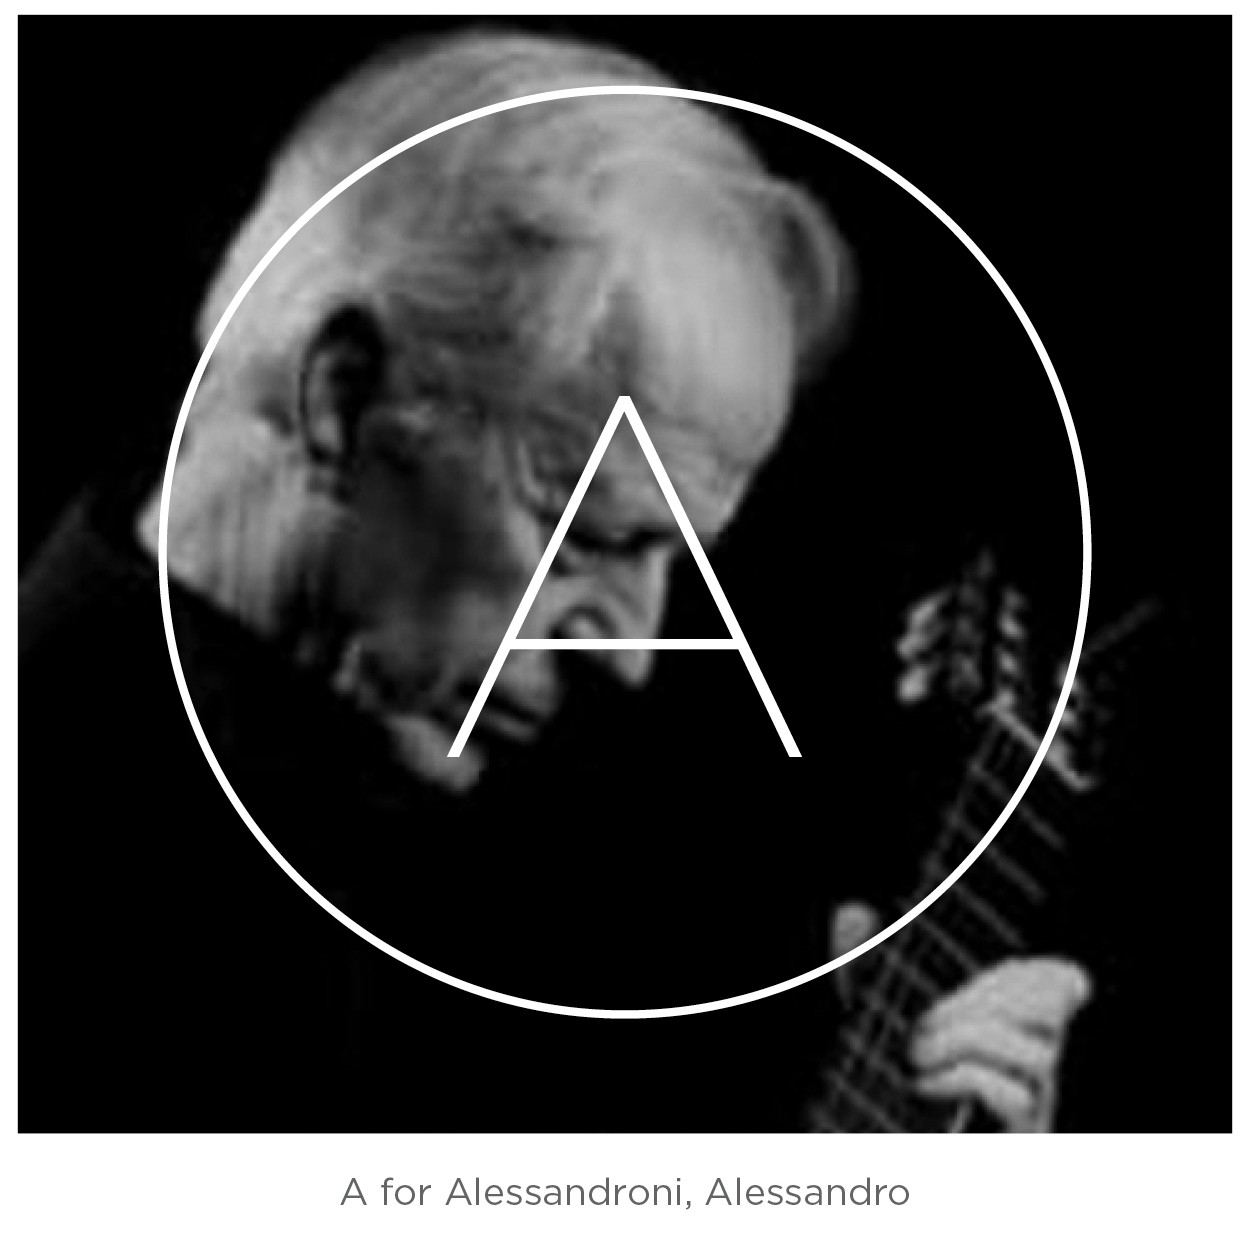 A for Alessandroni, Alessandro